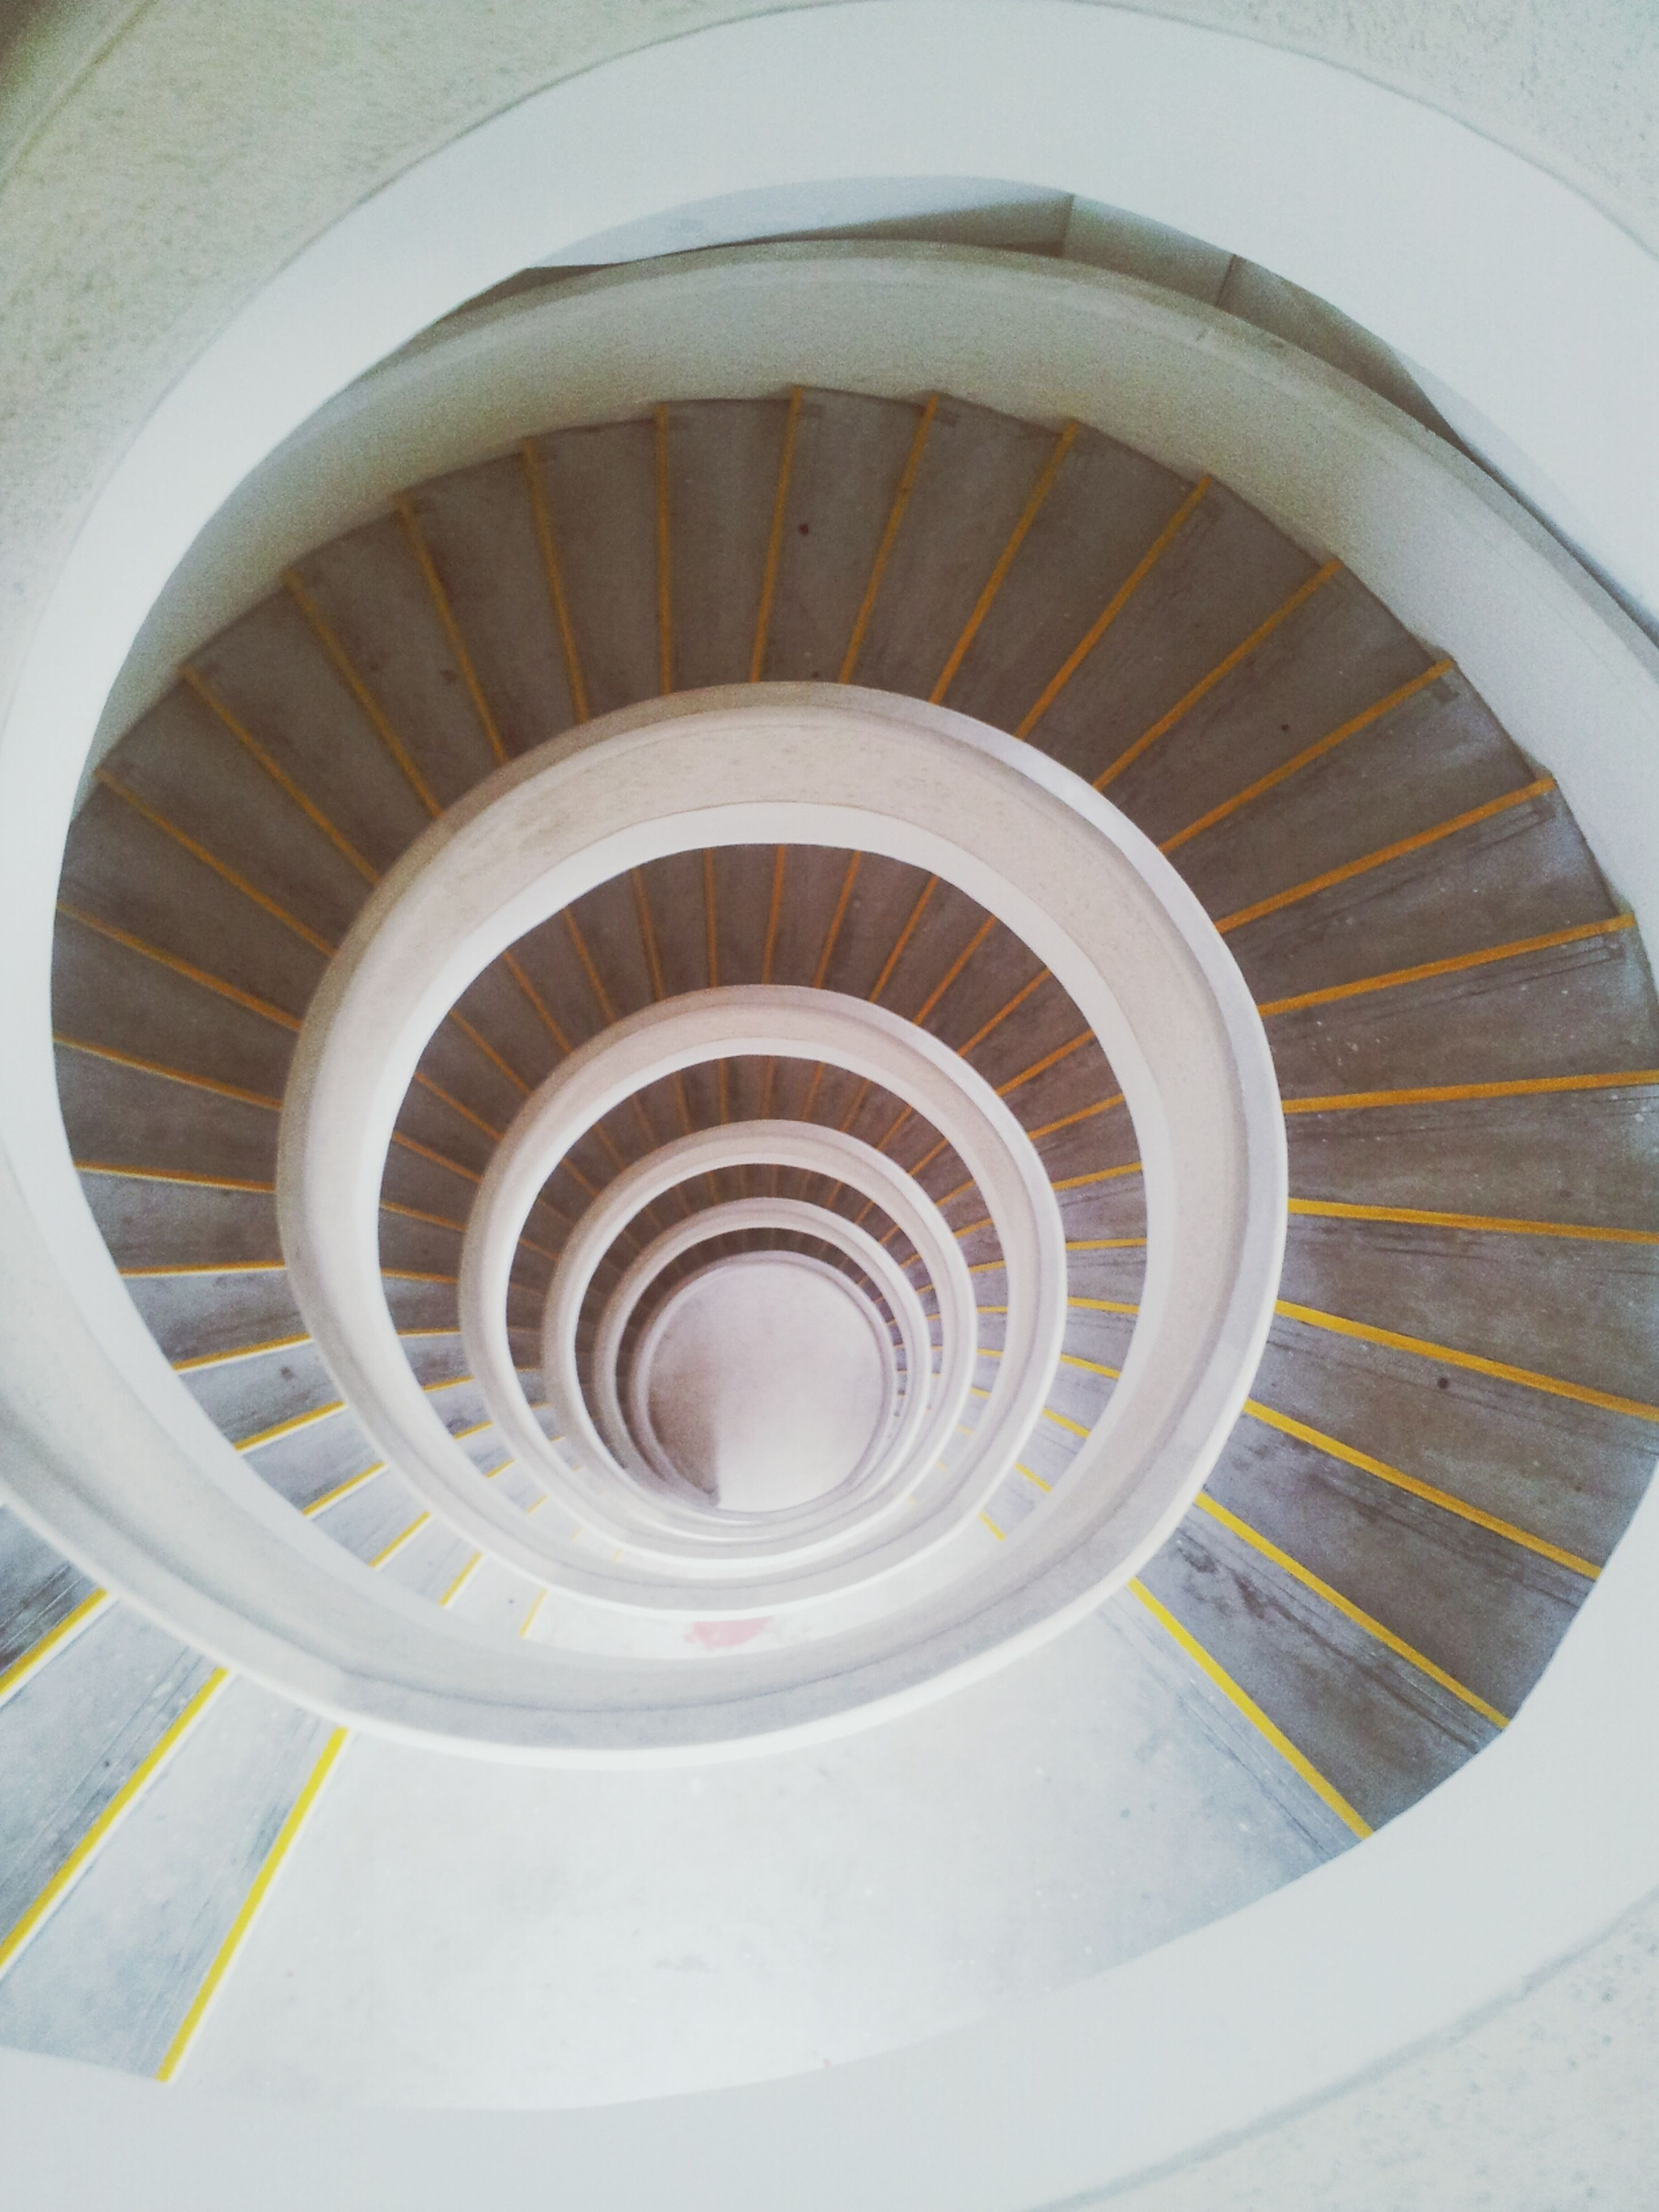 indoors, spiral, steps, railing, steps and staircases, staircase, high angle view, spiral staircase, pattern, directly above, circle, design, close-up, curve, no people, shape, geometric shape, repetition, metal, built structure